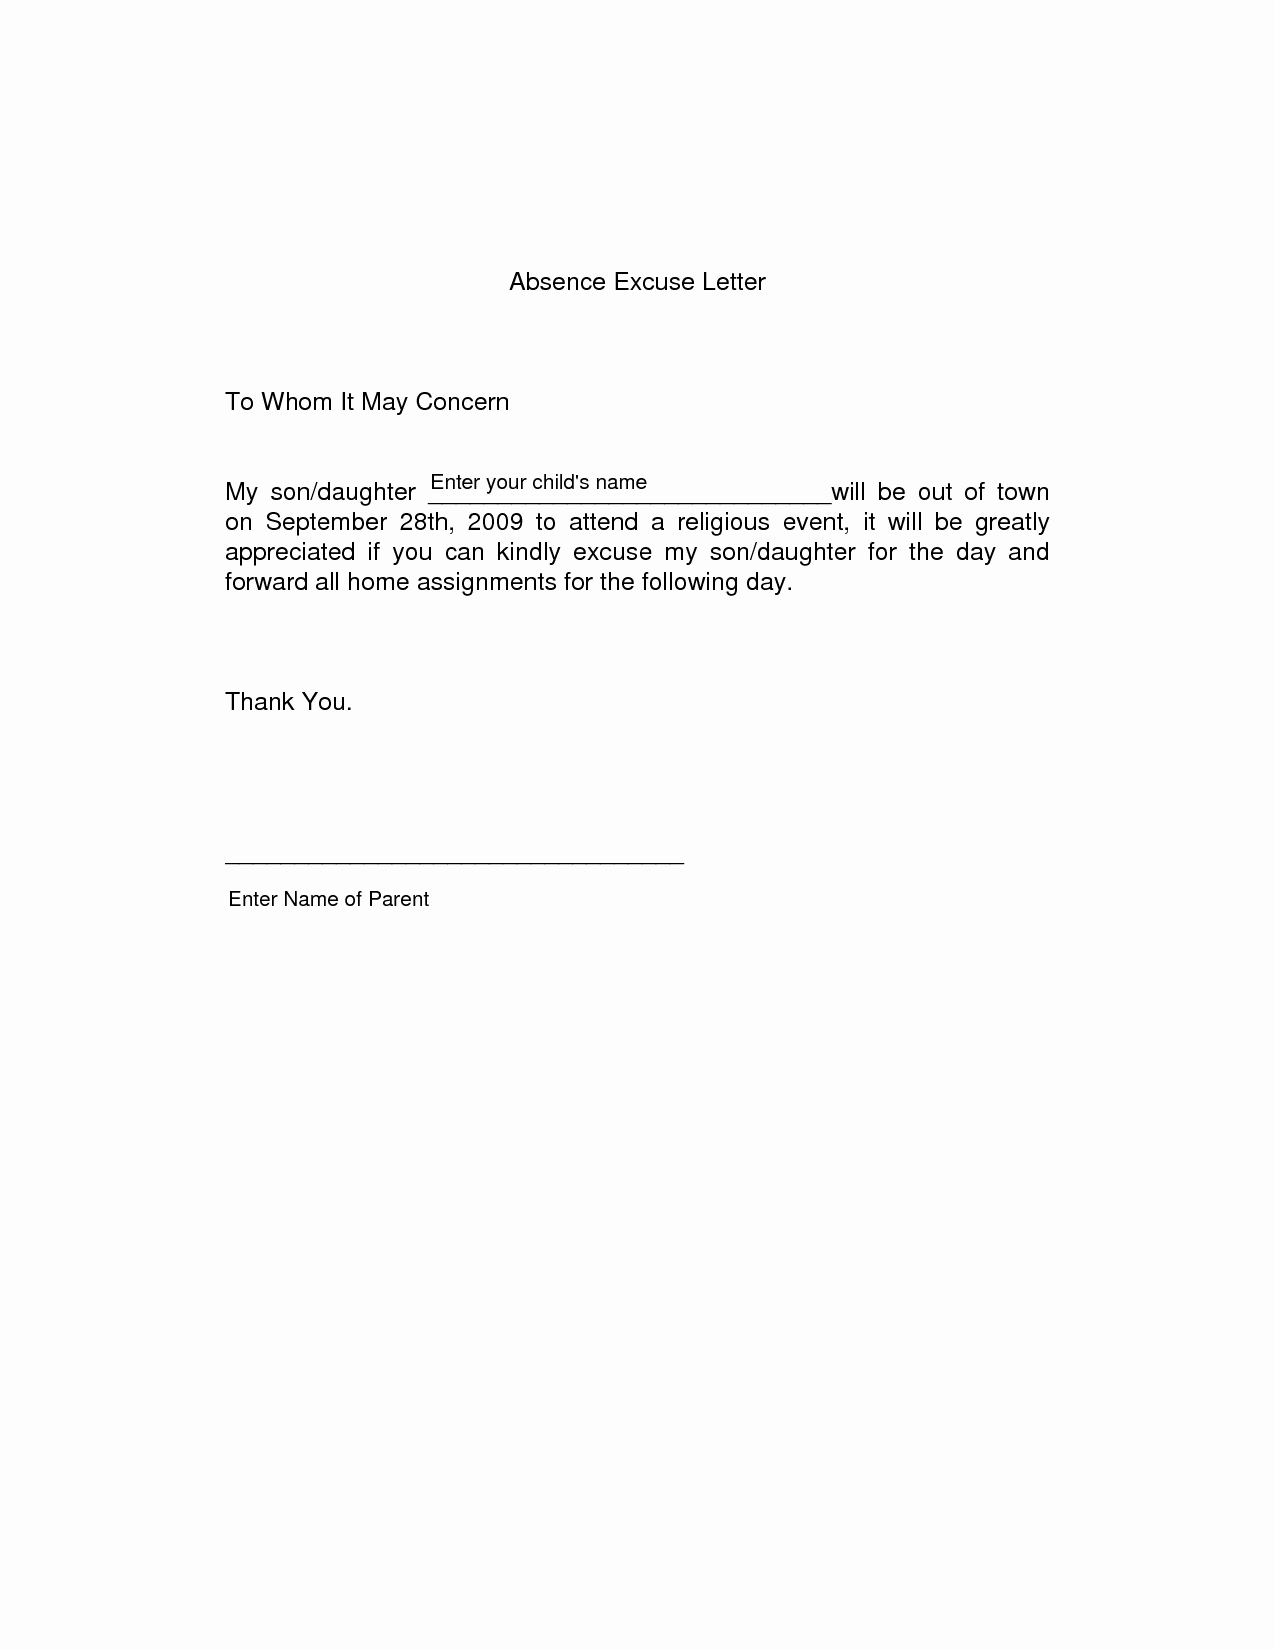 Absence From School Letter Template Inspirational format Excuse Letter for Being Absent Best Template